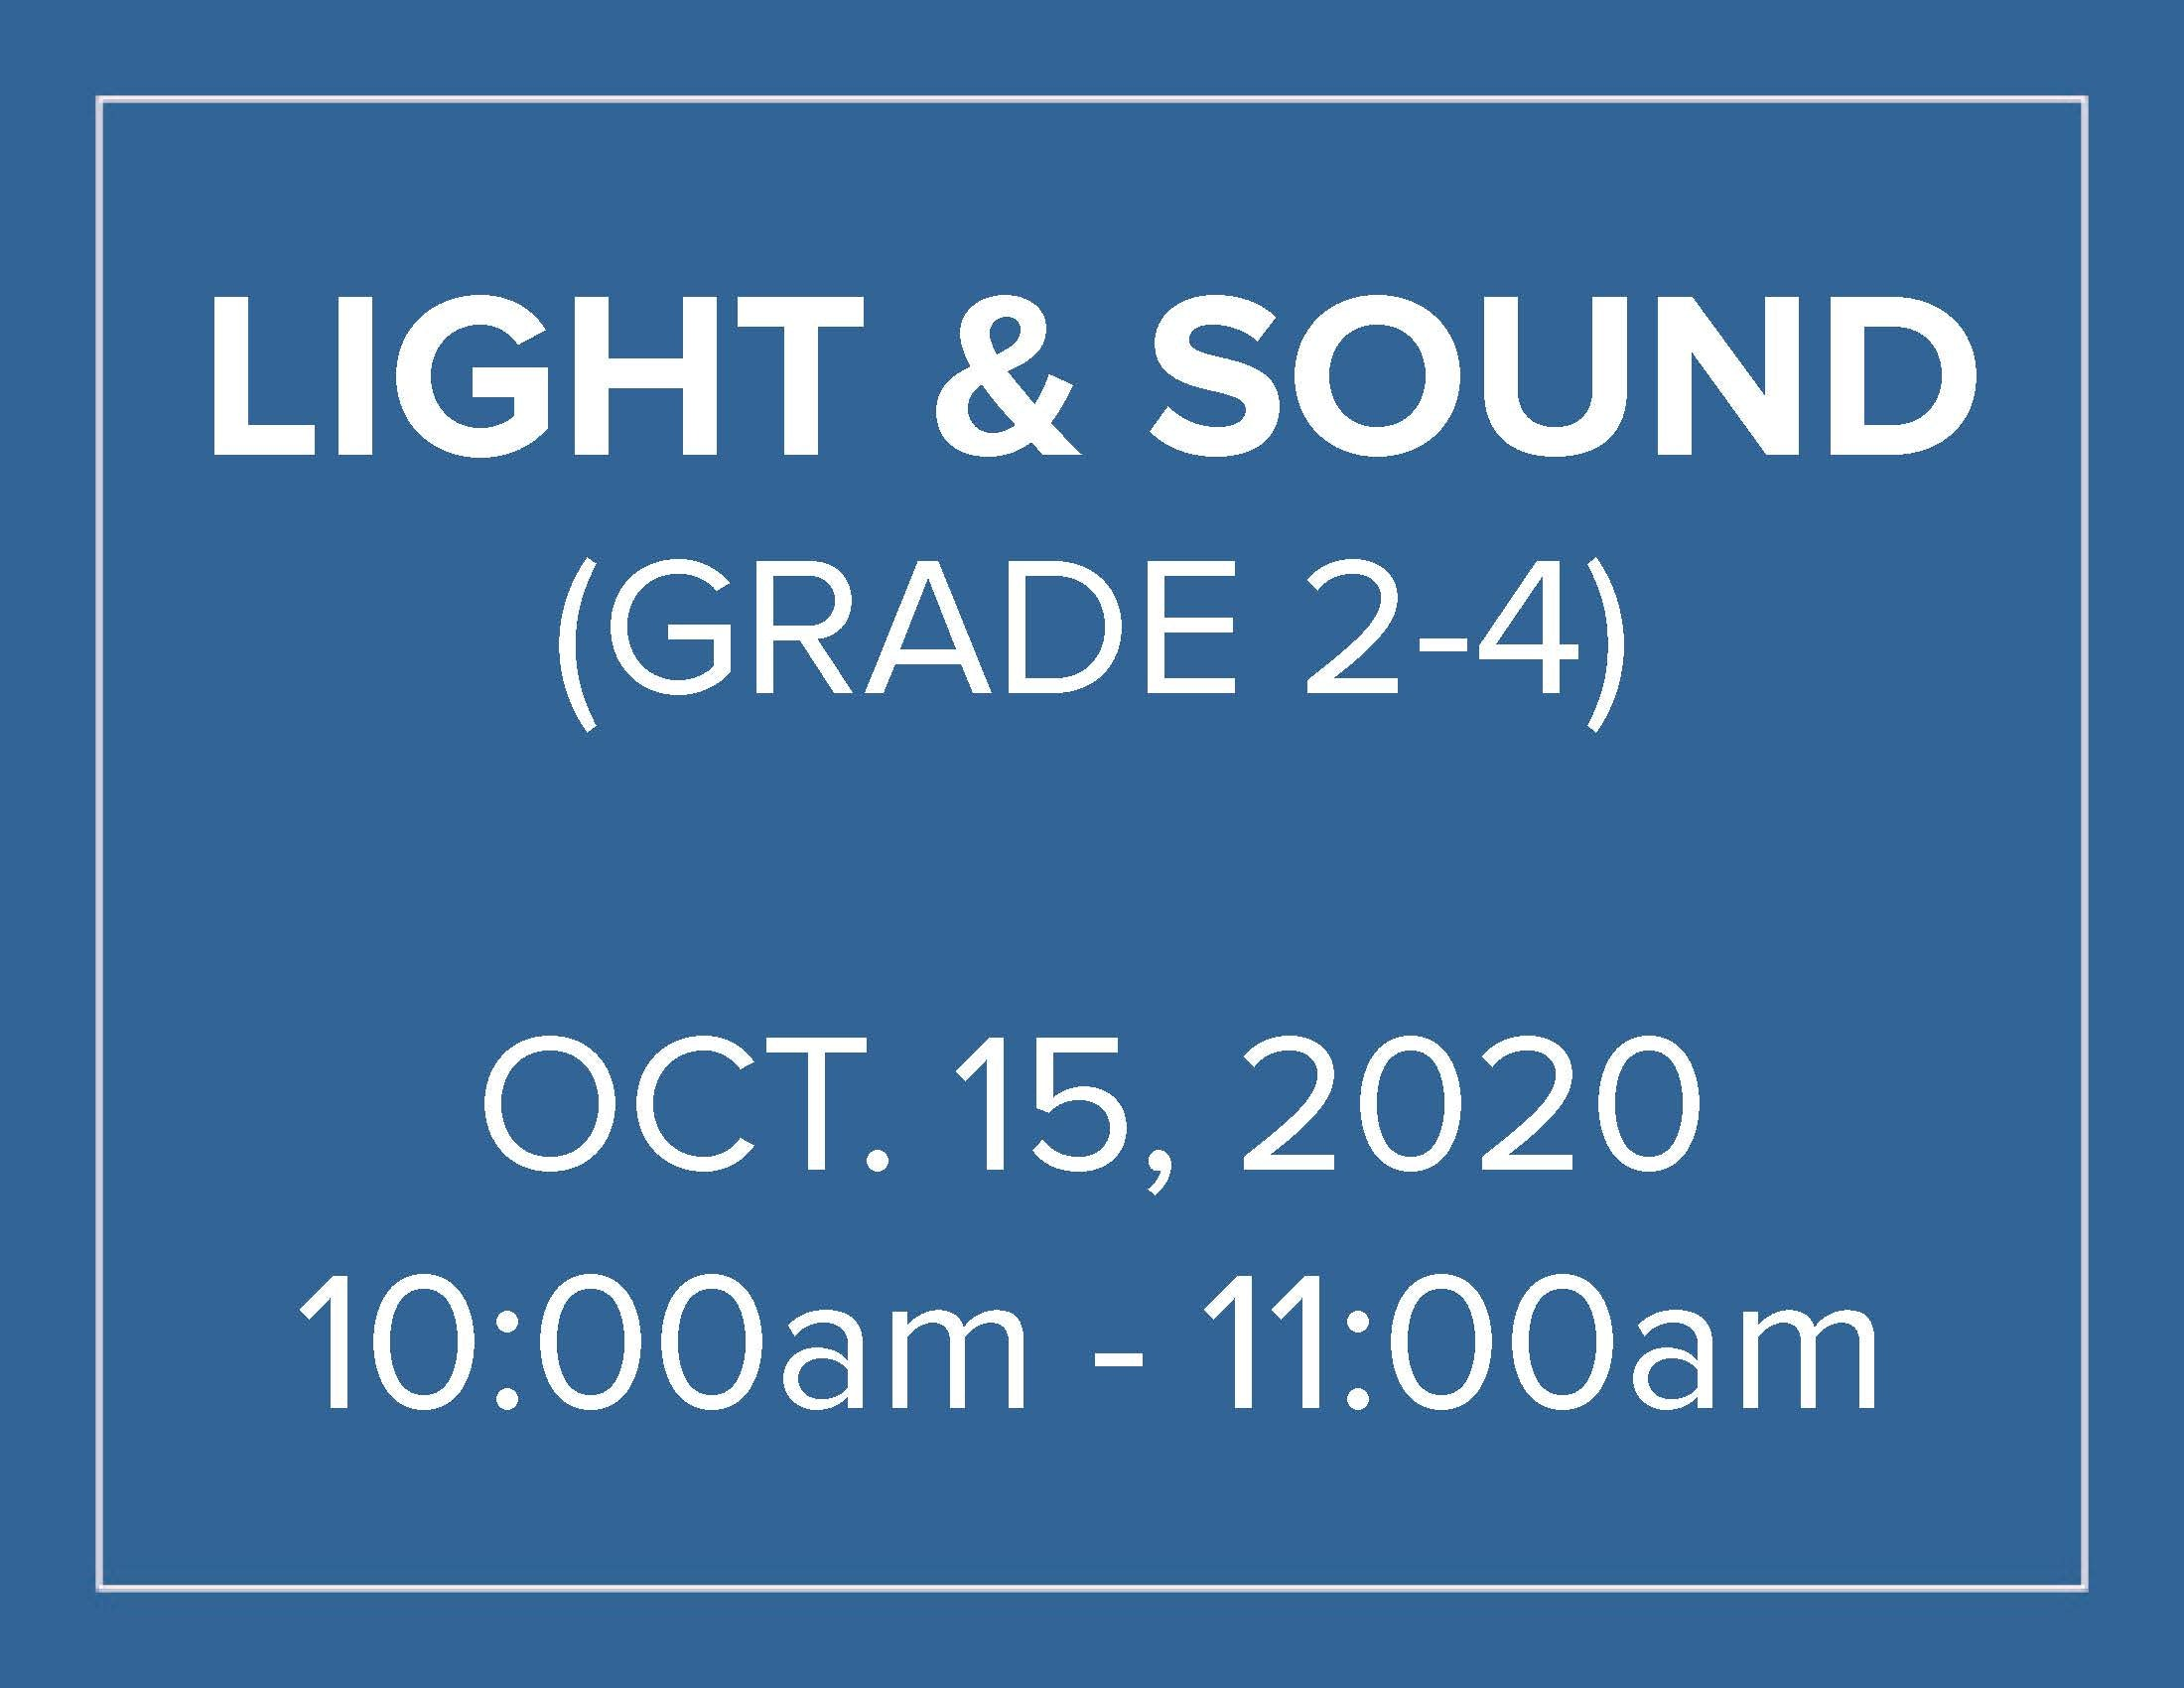 Light & Sound - Homeschool Program